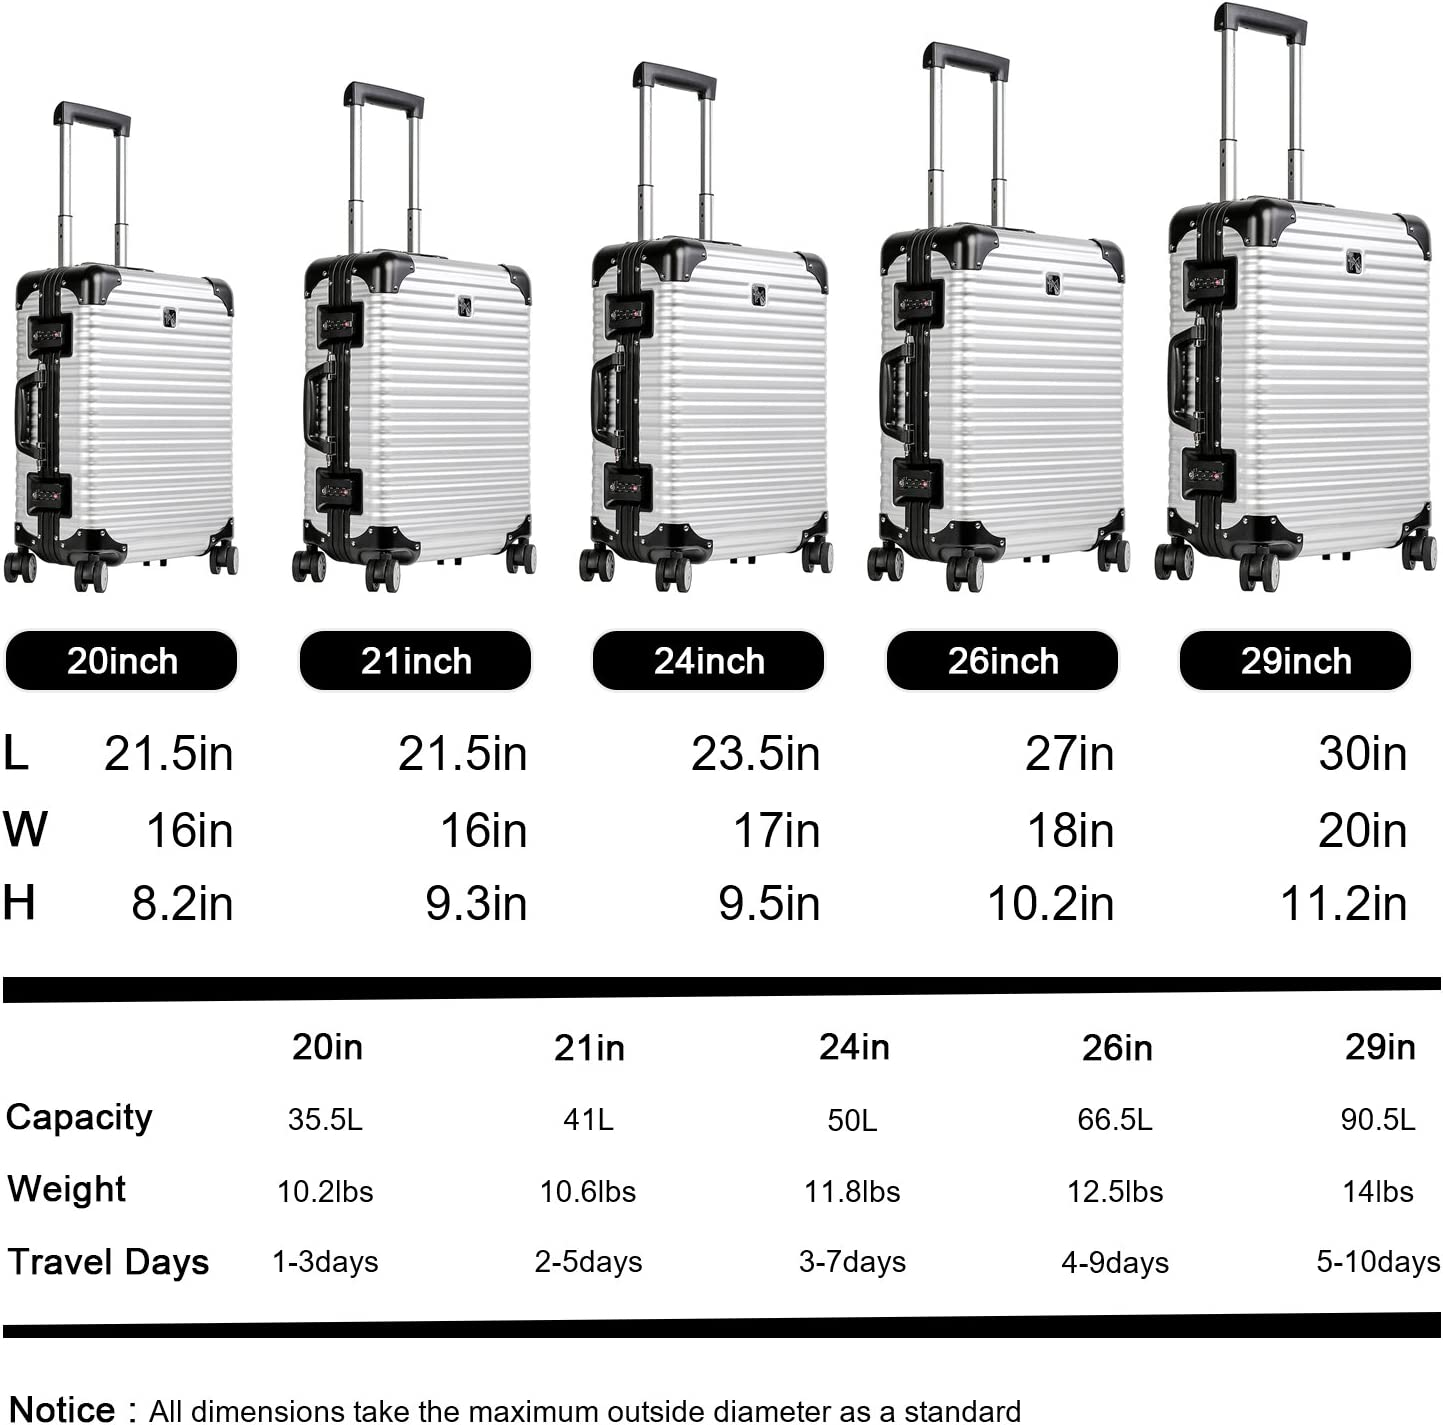 Luggage by LANZZO Aluminum Travel Suitcase Magnesium Alloy with Spinner Wheels TSA Lock Approved Hardshell